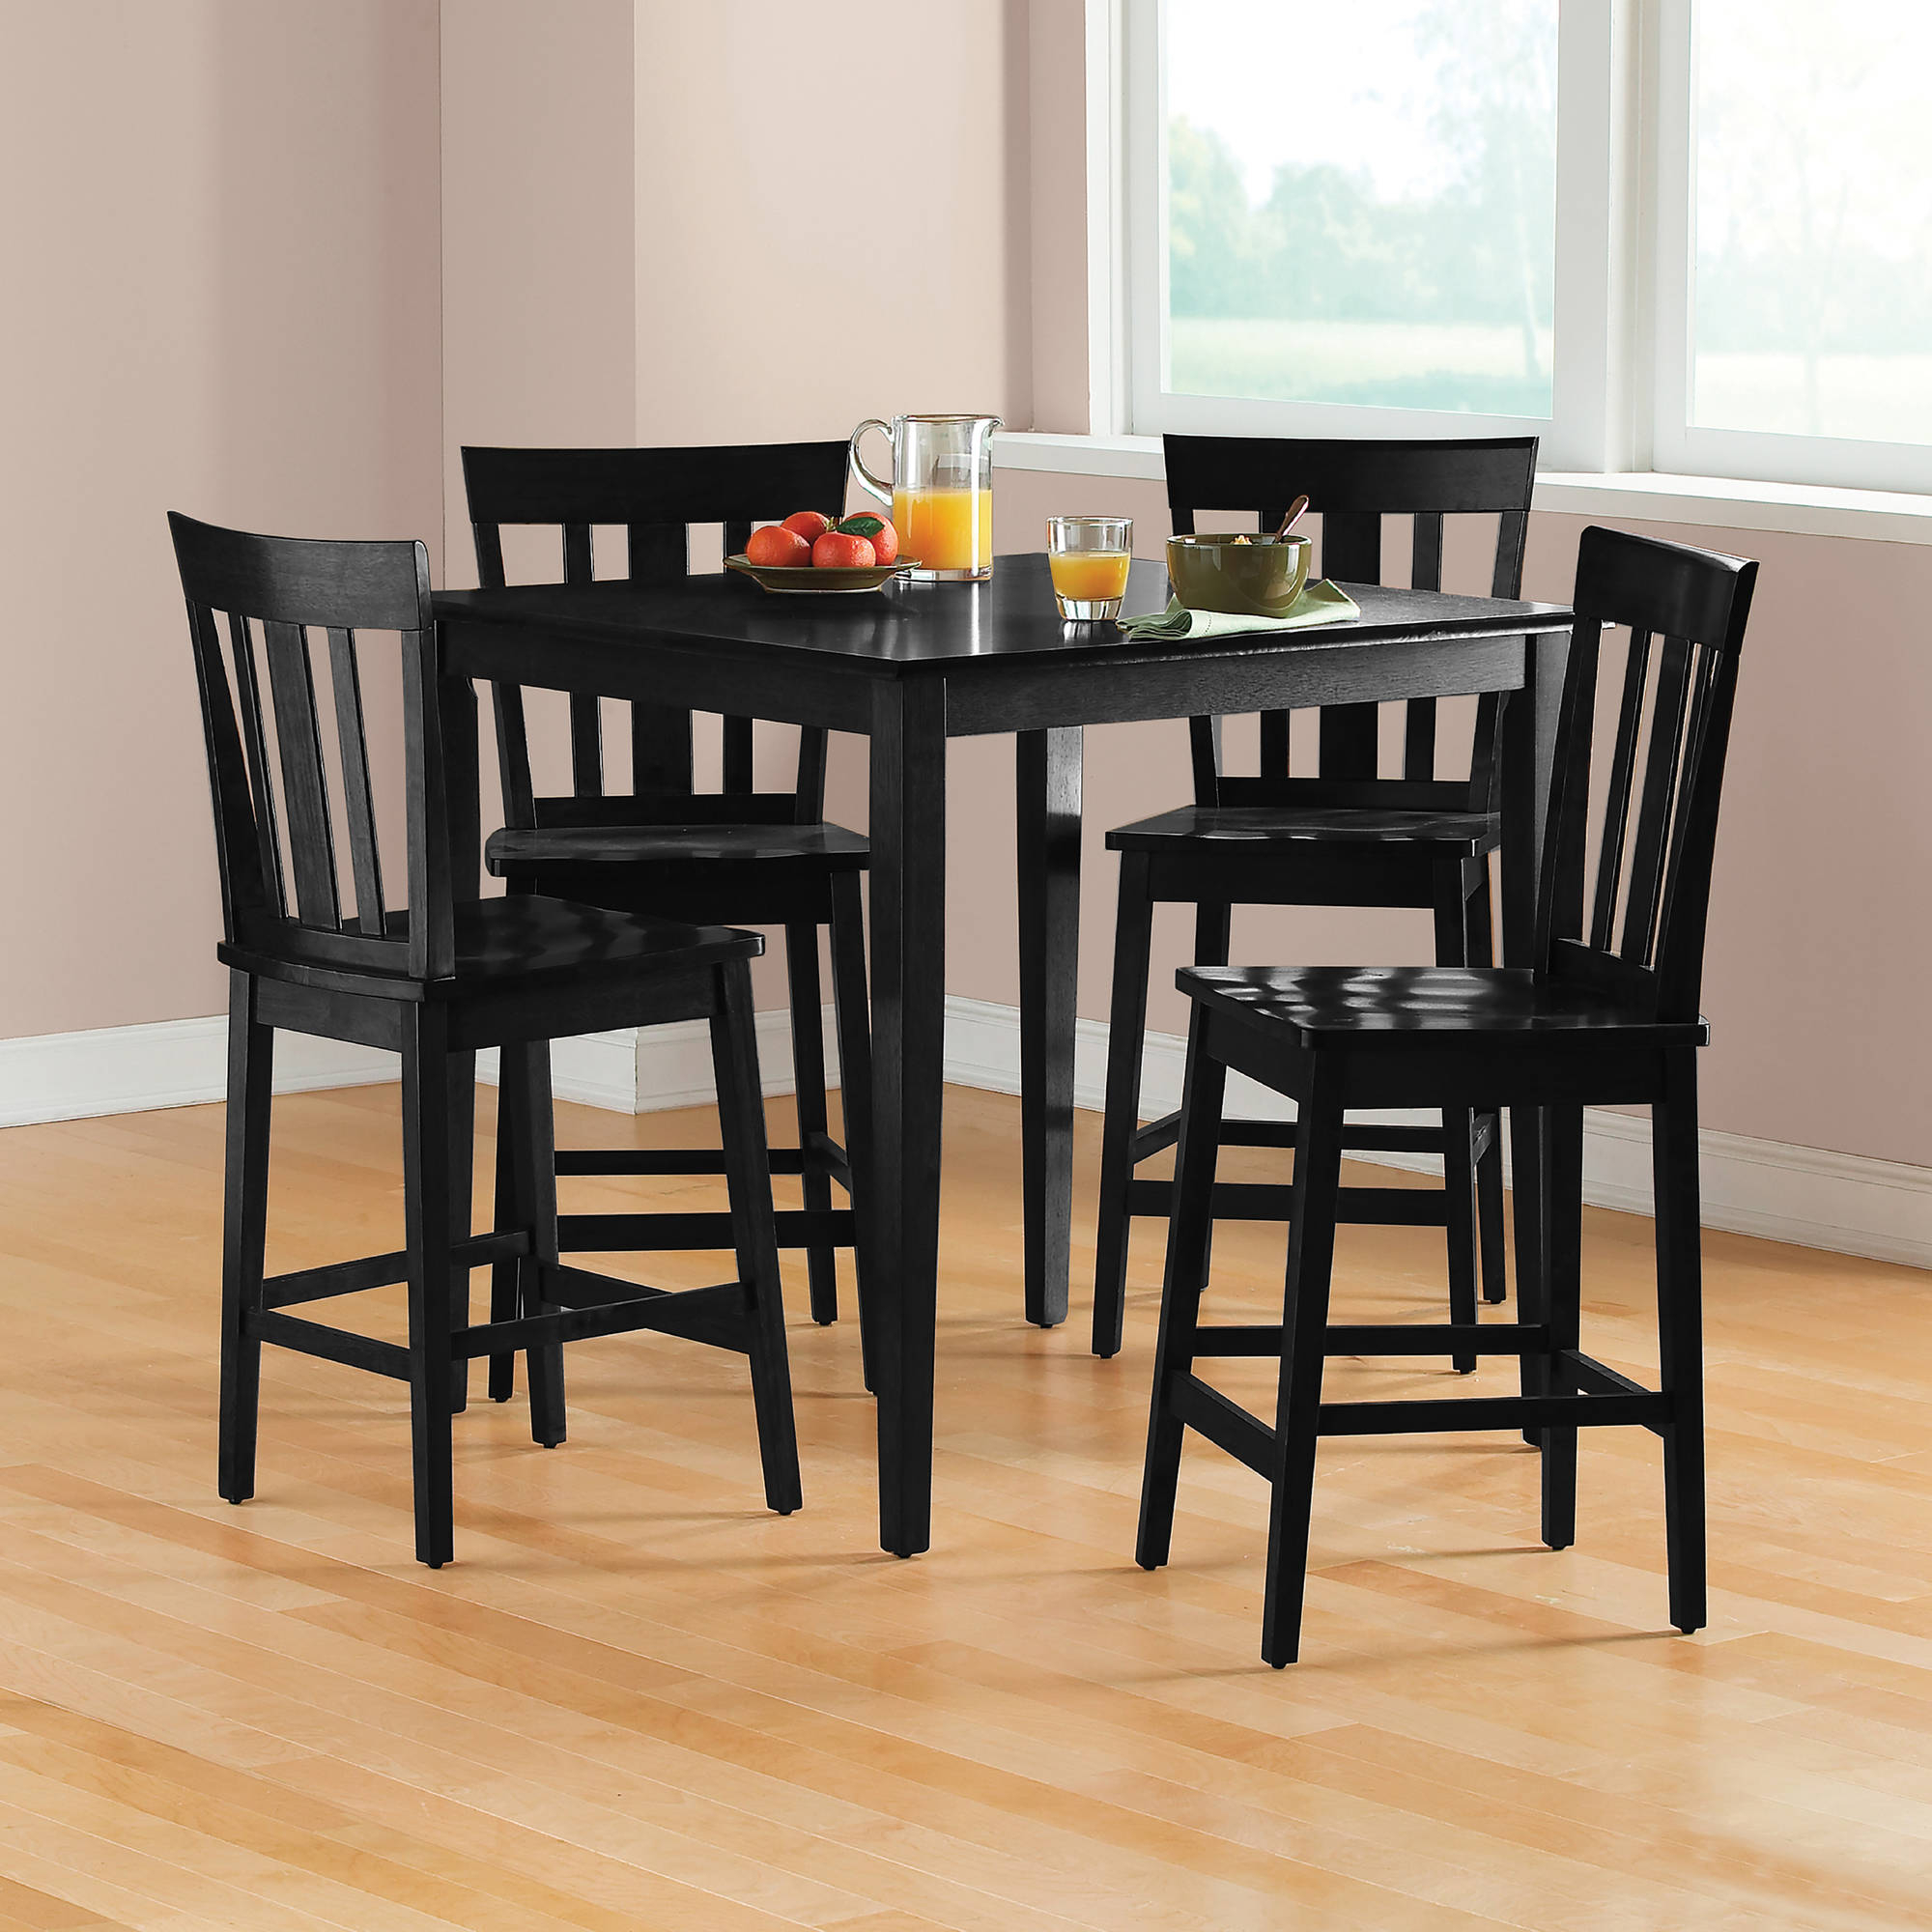 Trendy Target Marketing Systems 3 Piece Breakfast Nook Dining Set Inside Crownover 3 Piece Bar Table Sets (View 18 of 20)